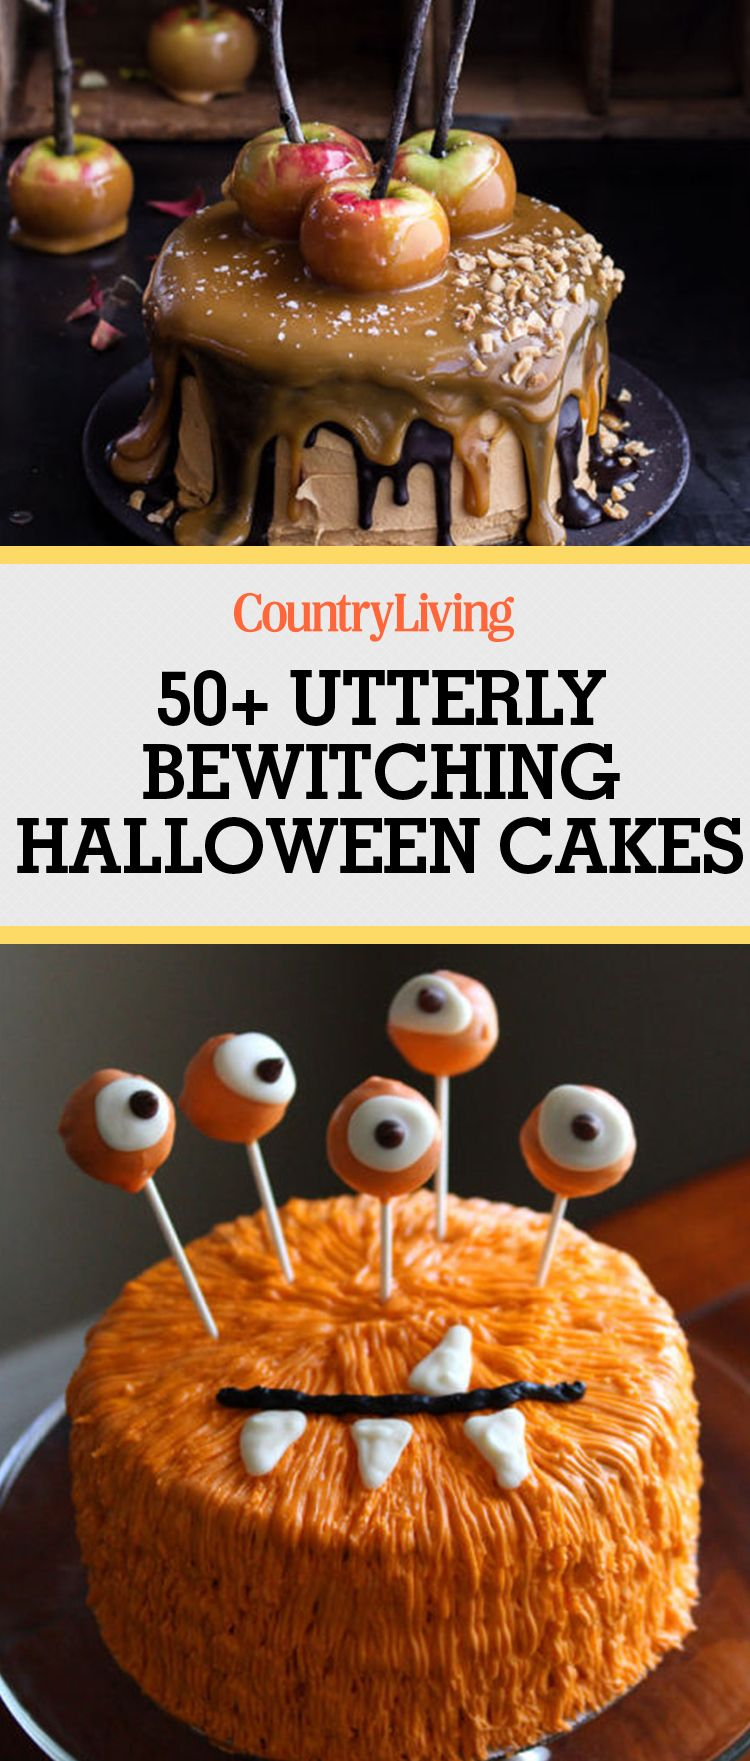 61 Easy Halloween Cakes - Recipes and Halloween Cake Decorating Ideas